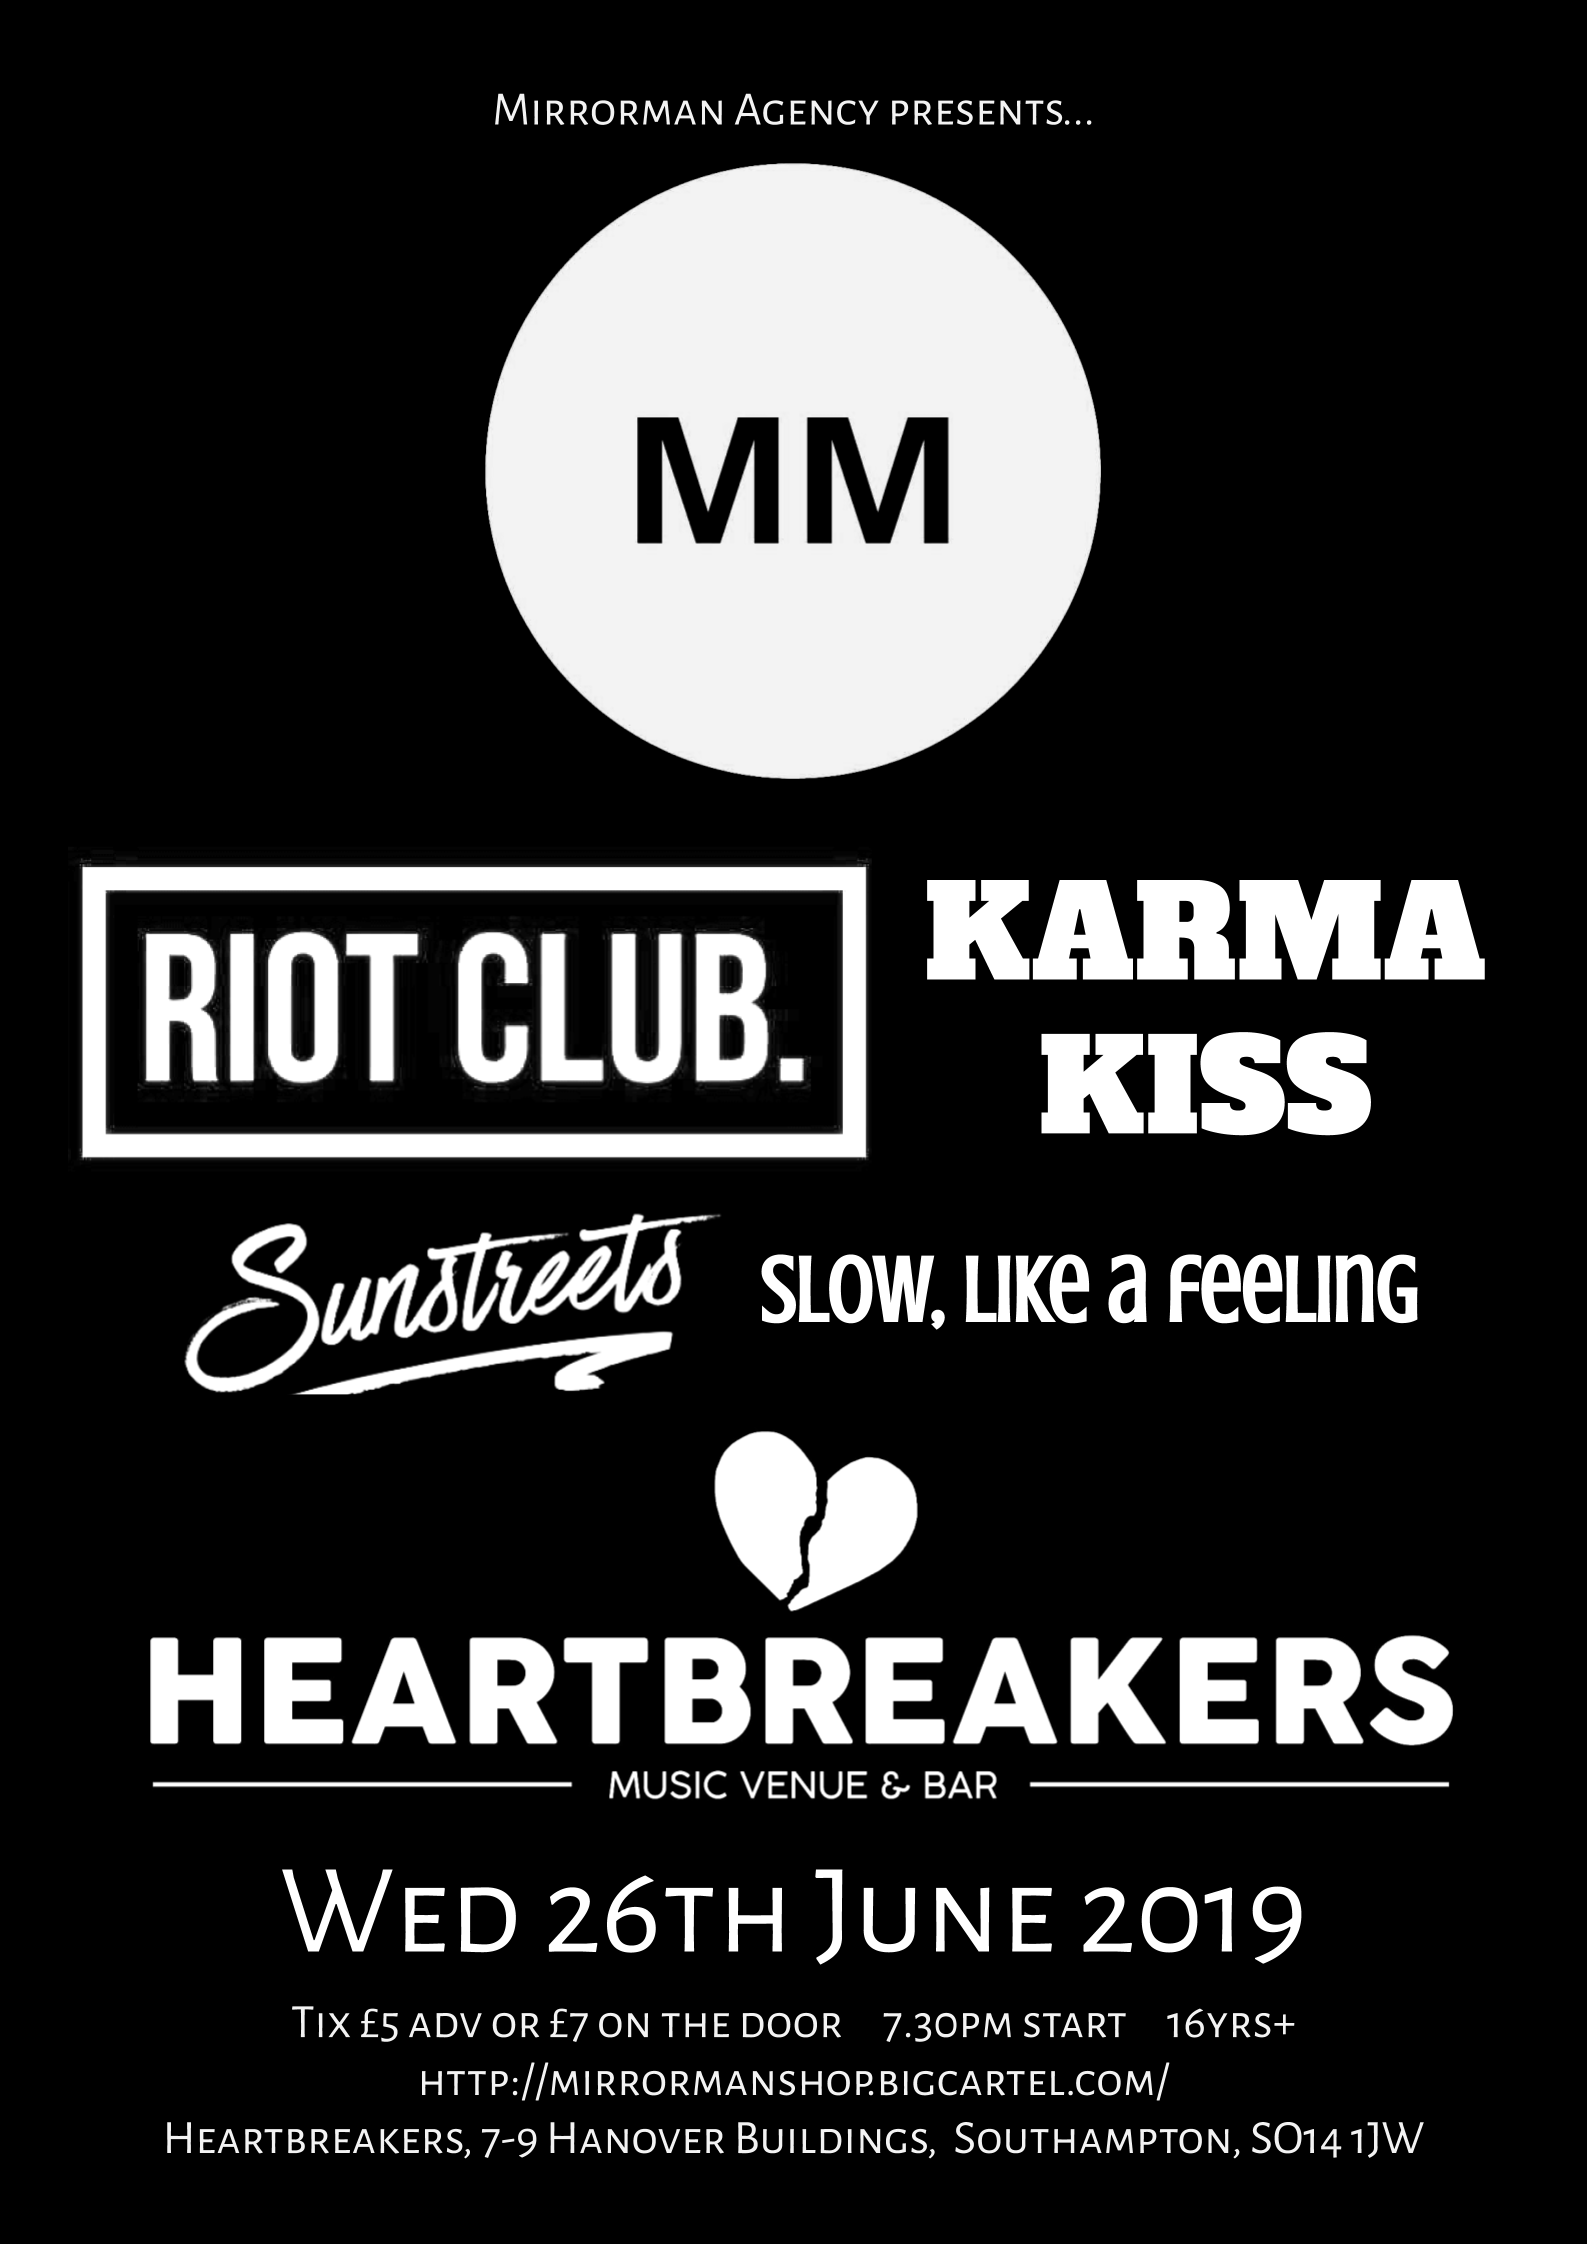 Mirrorman presents at Heartbreakers, Southampton (26.06.19)